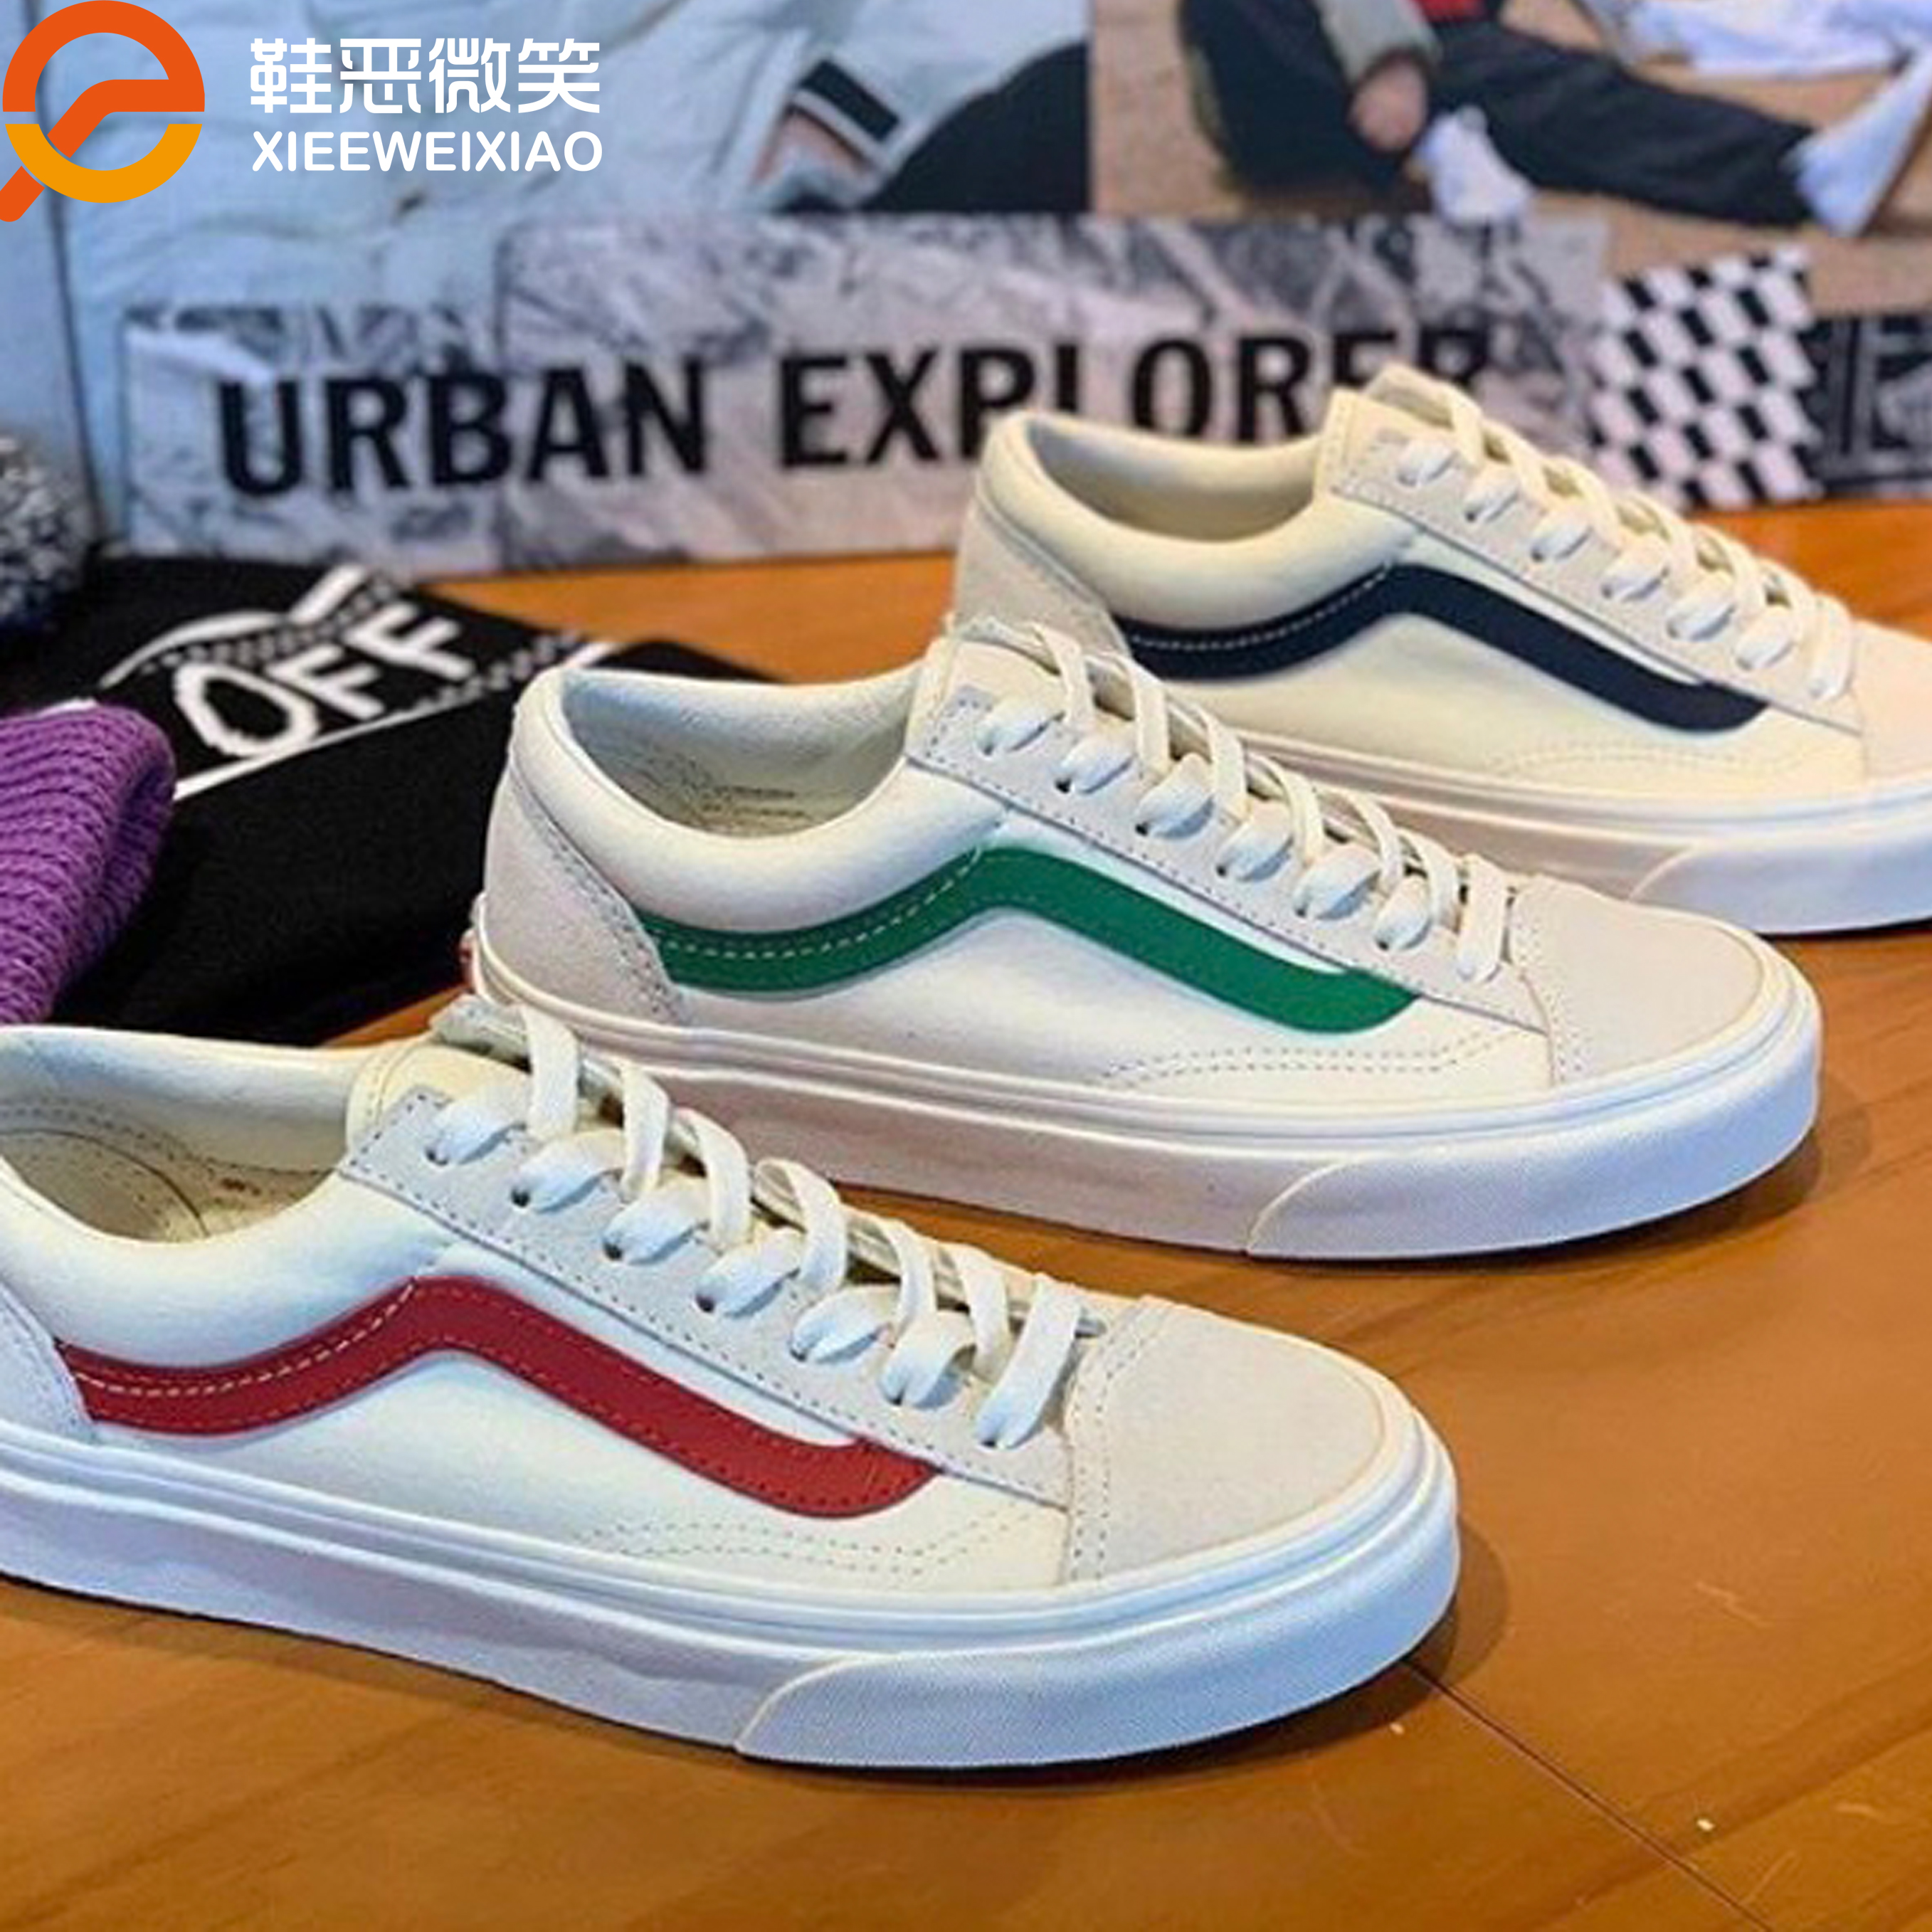 Vans sneakers style 36 white green